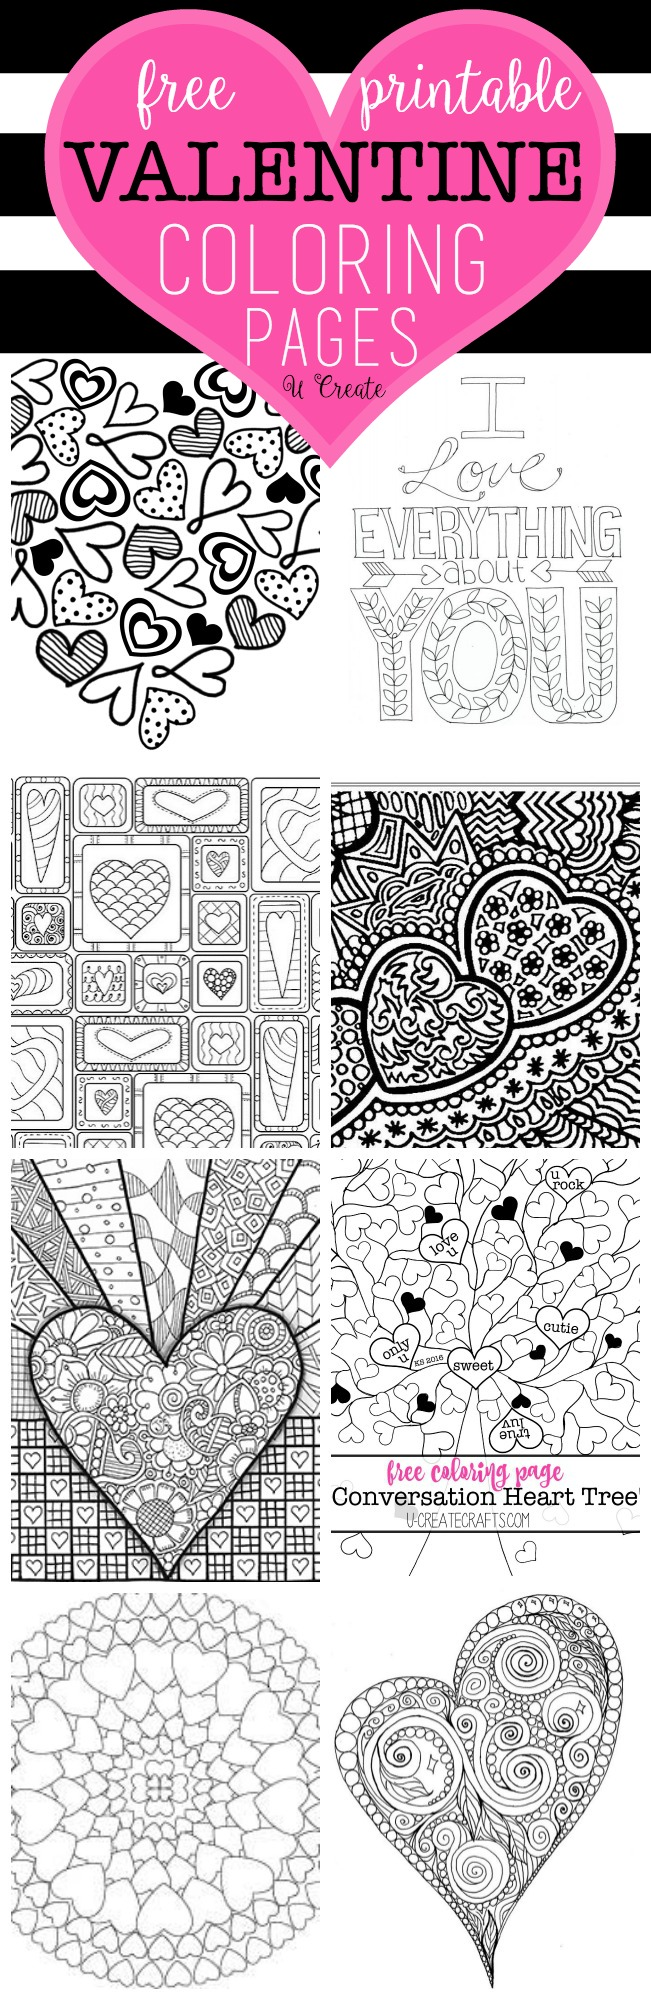 picture about Printable Valentine Color Pages referred to as Free of charge Valentine Coloring Internet pages - U Acquire